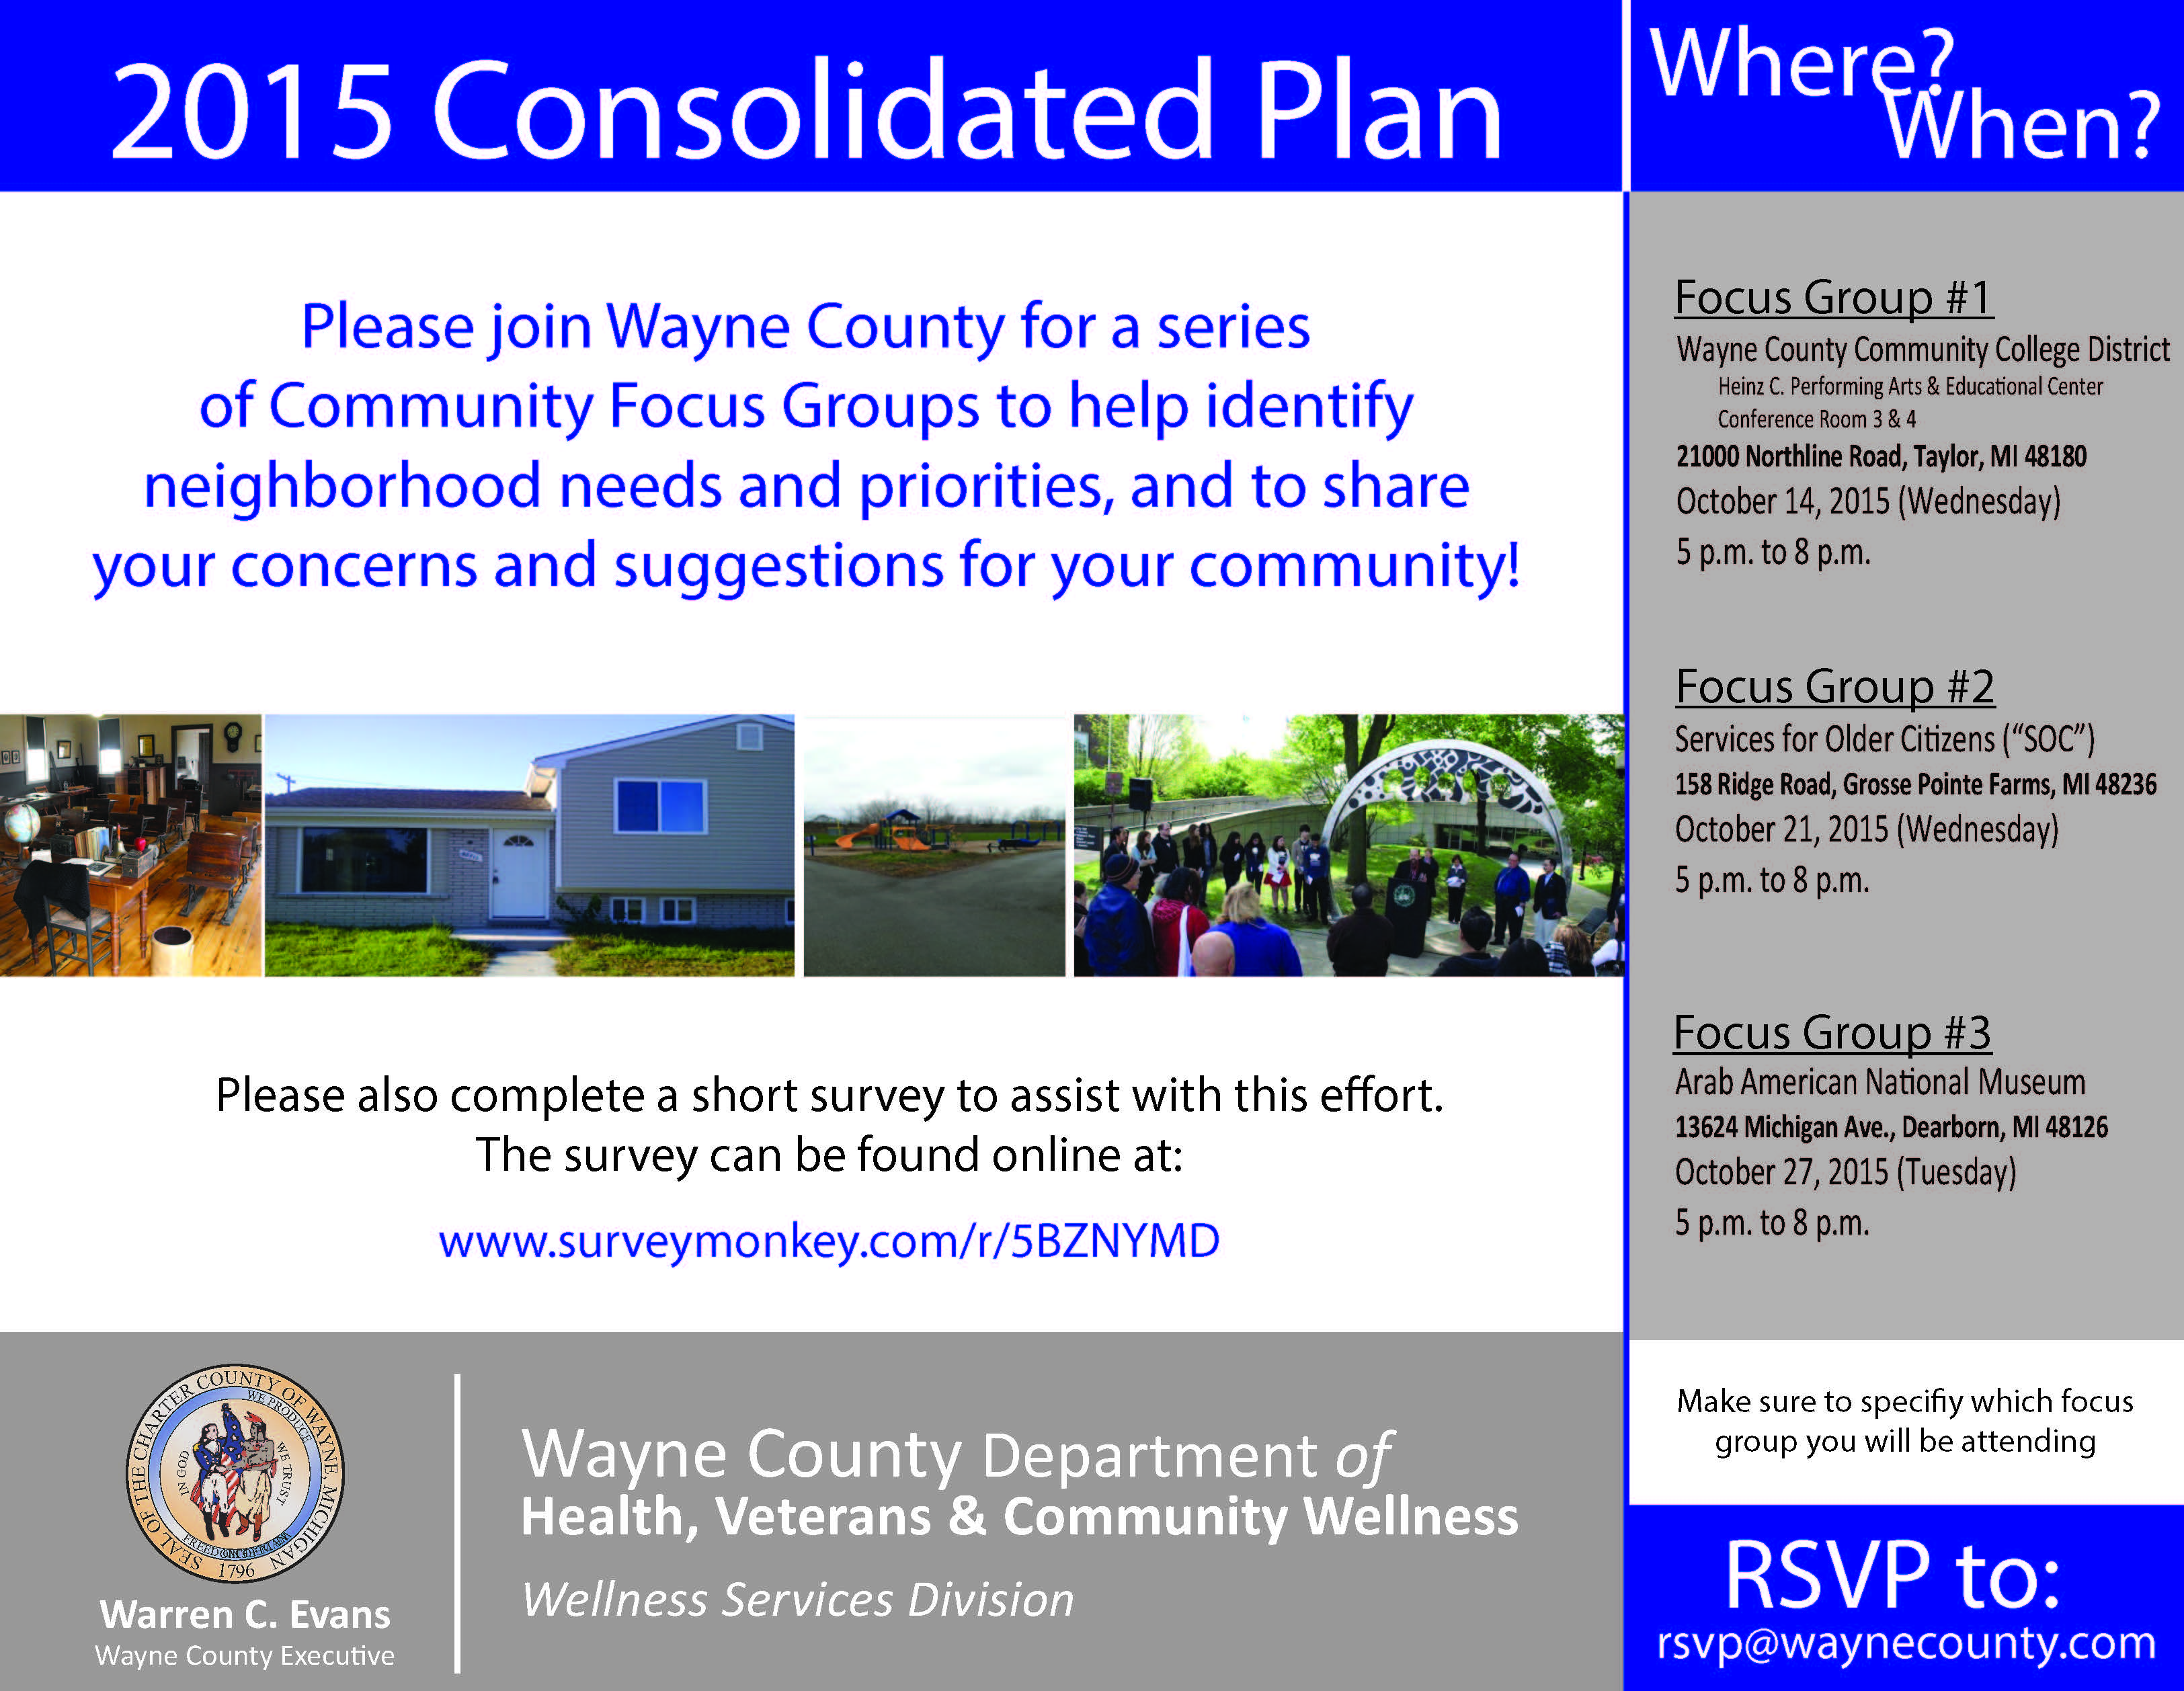 focus-groups-wayne-county-2015-consolidated-plan